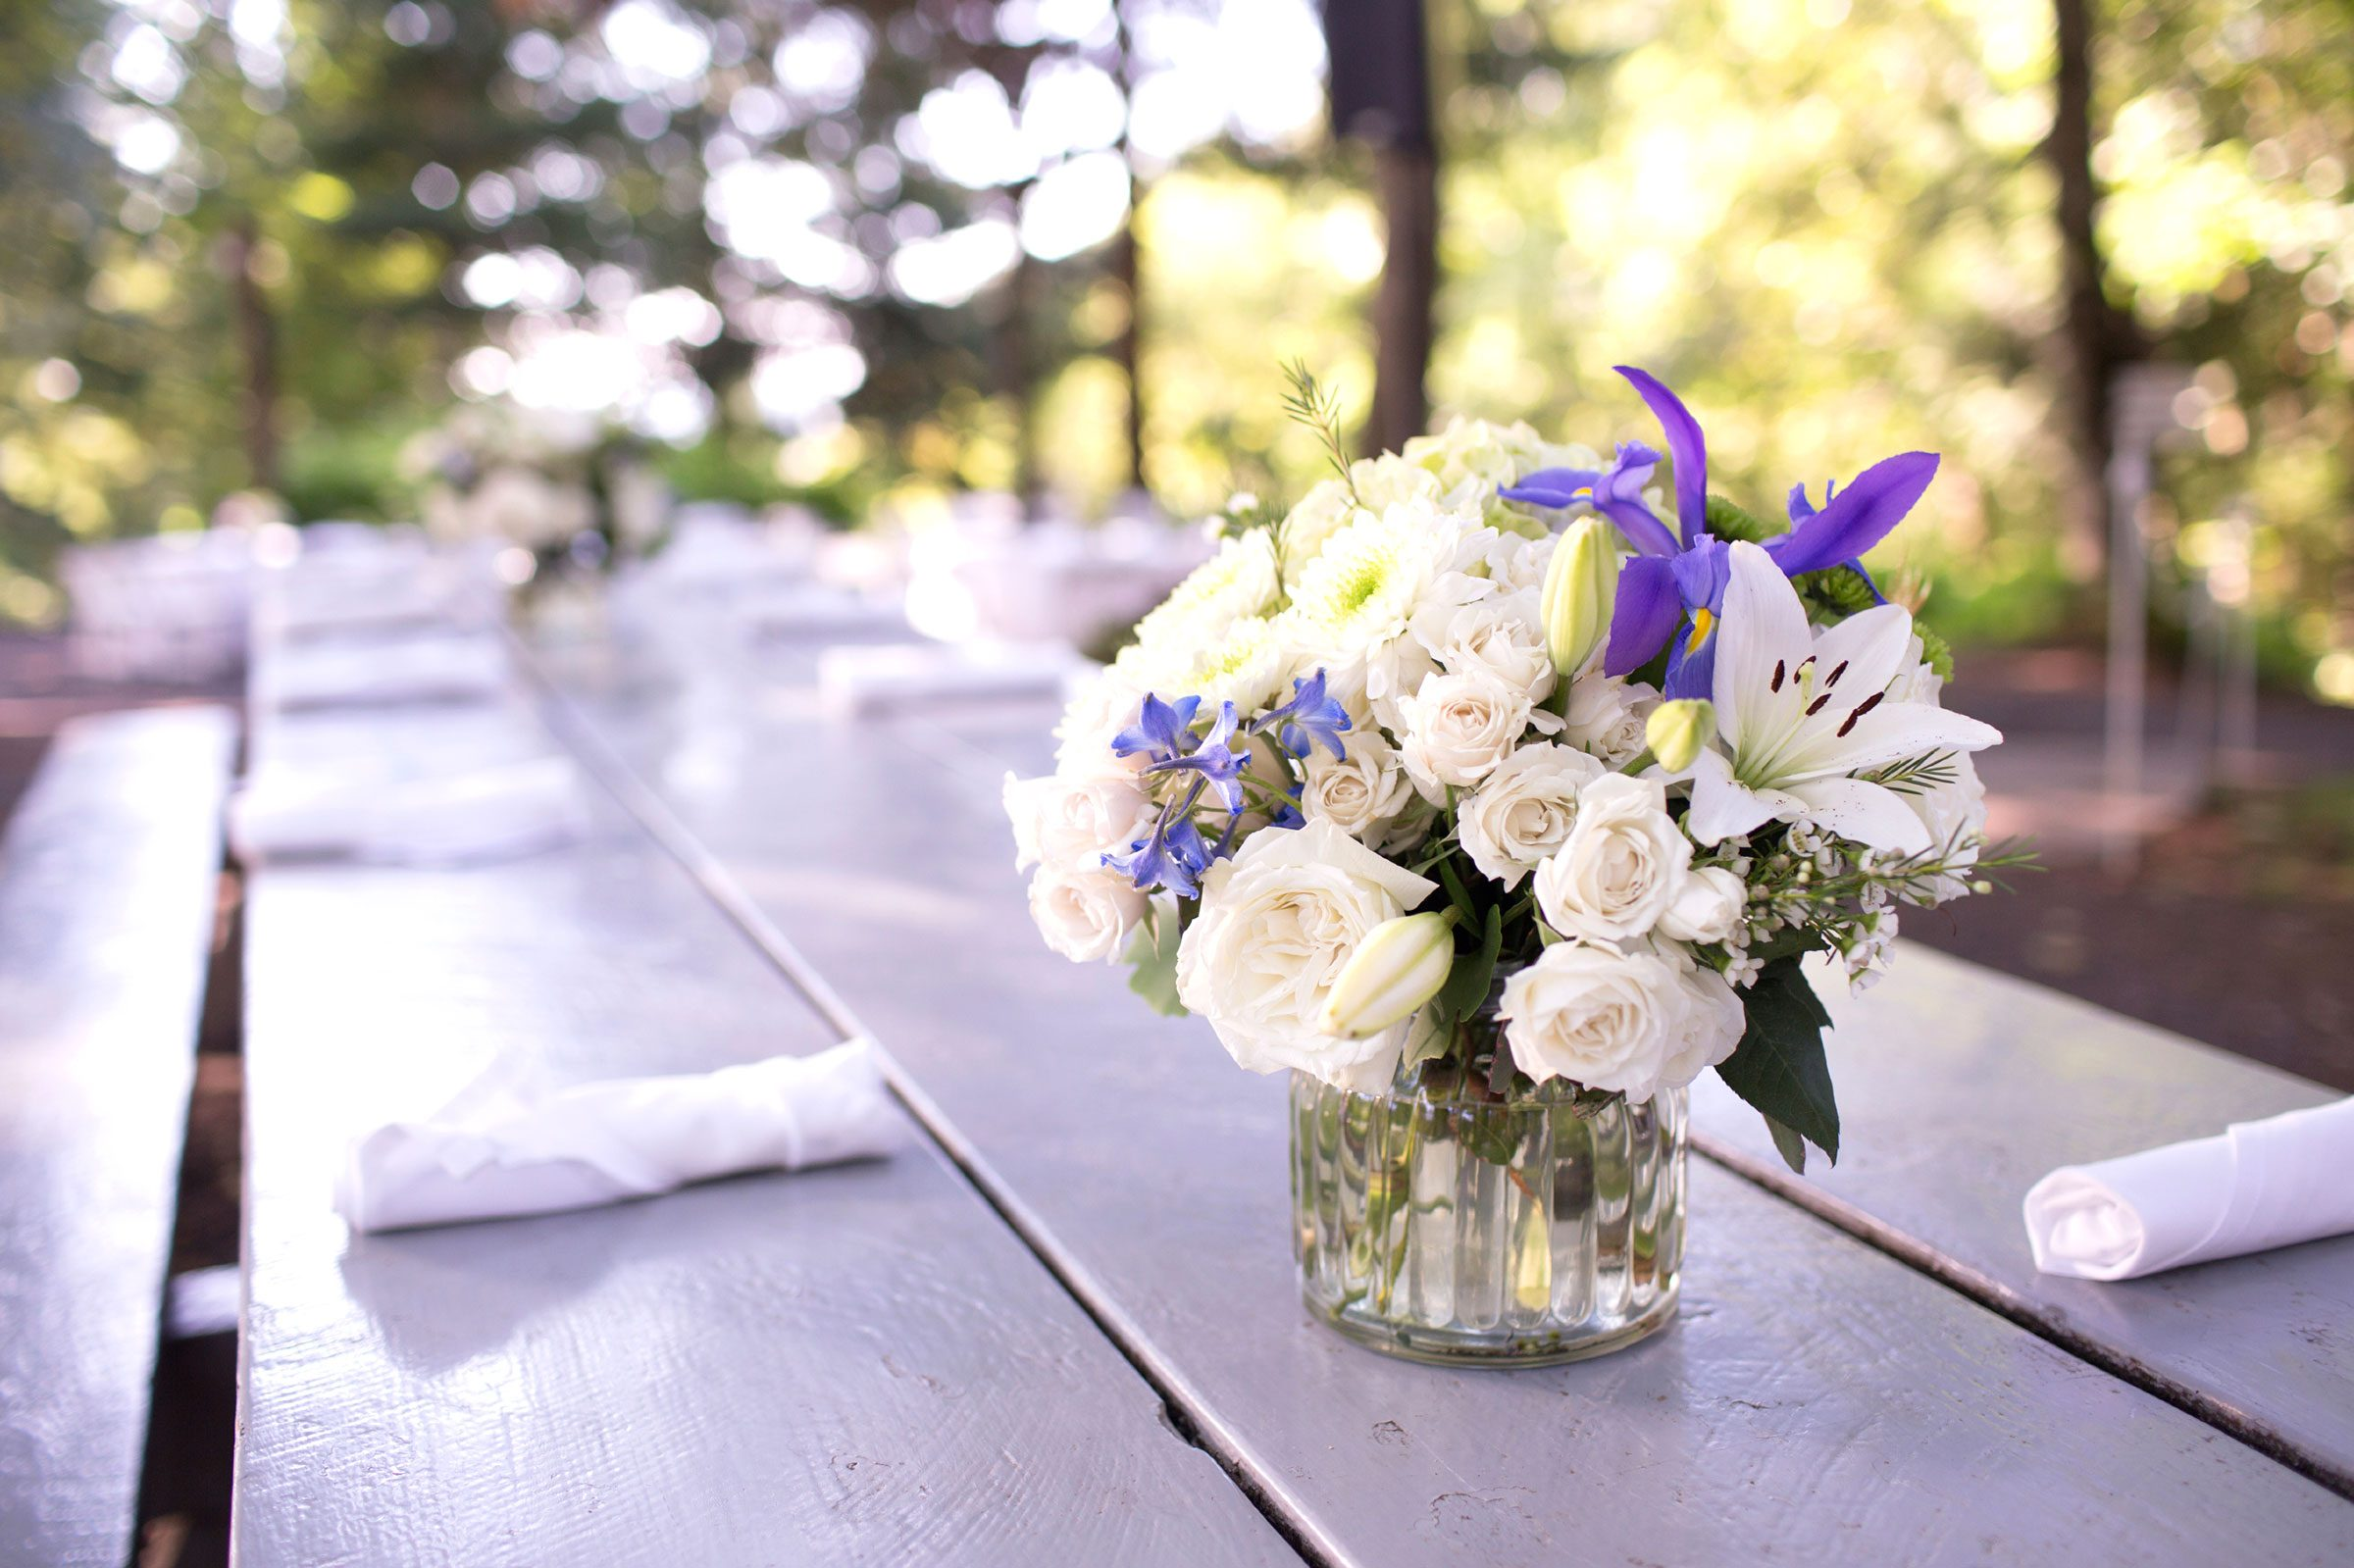 13 Things Your Florist Won't Tell You